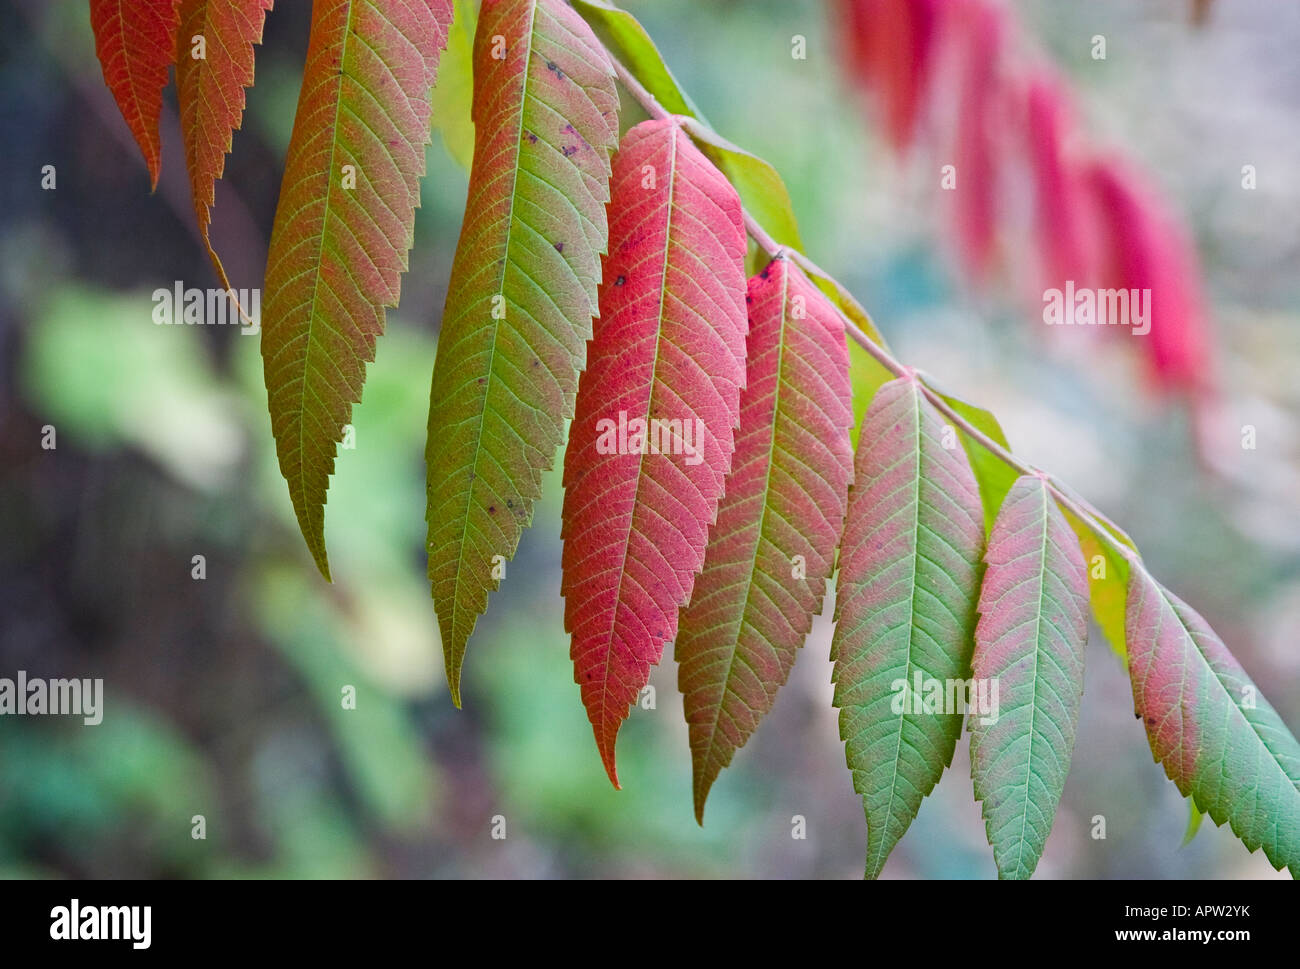 Turned Sumach leaves - Stock Image